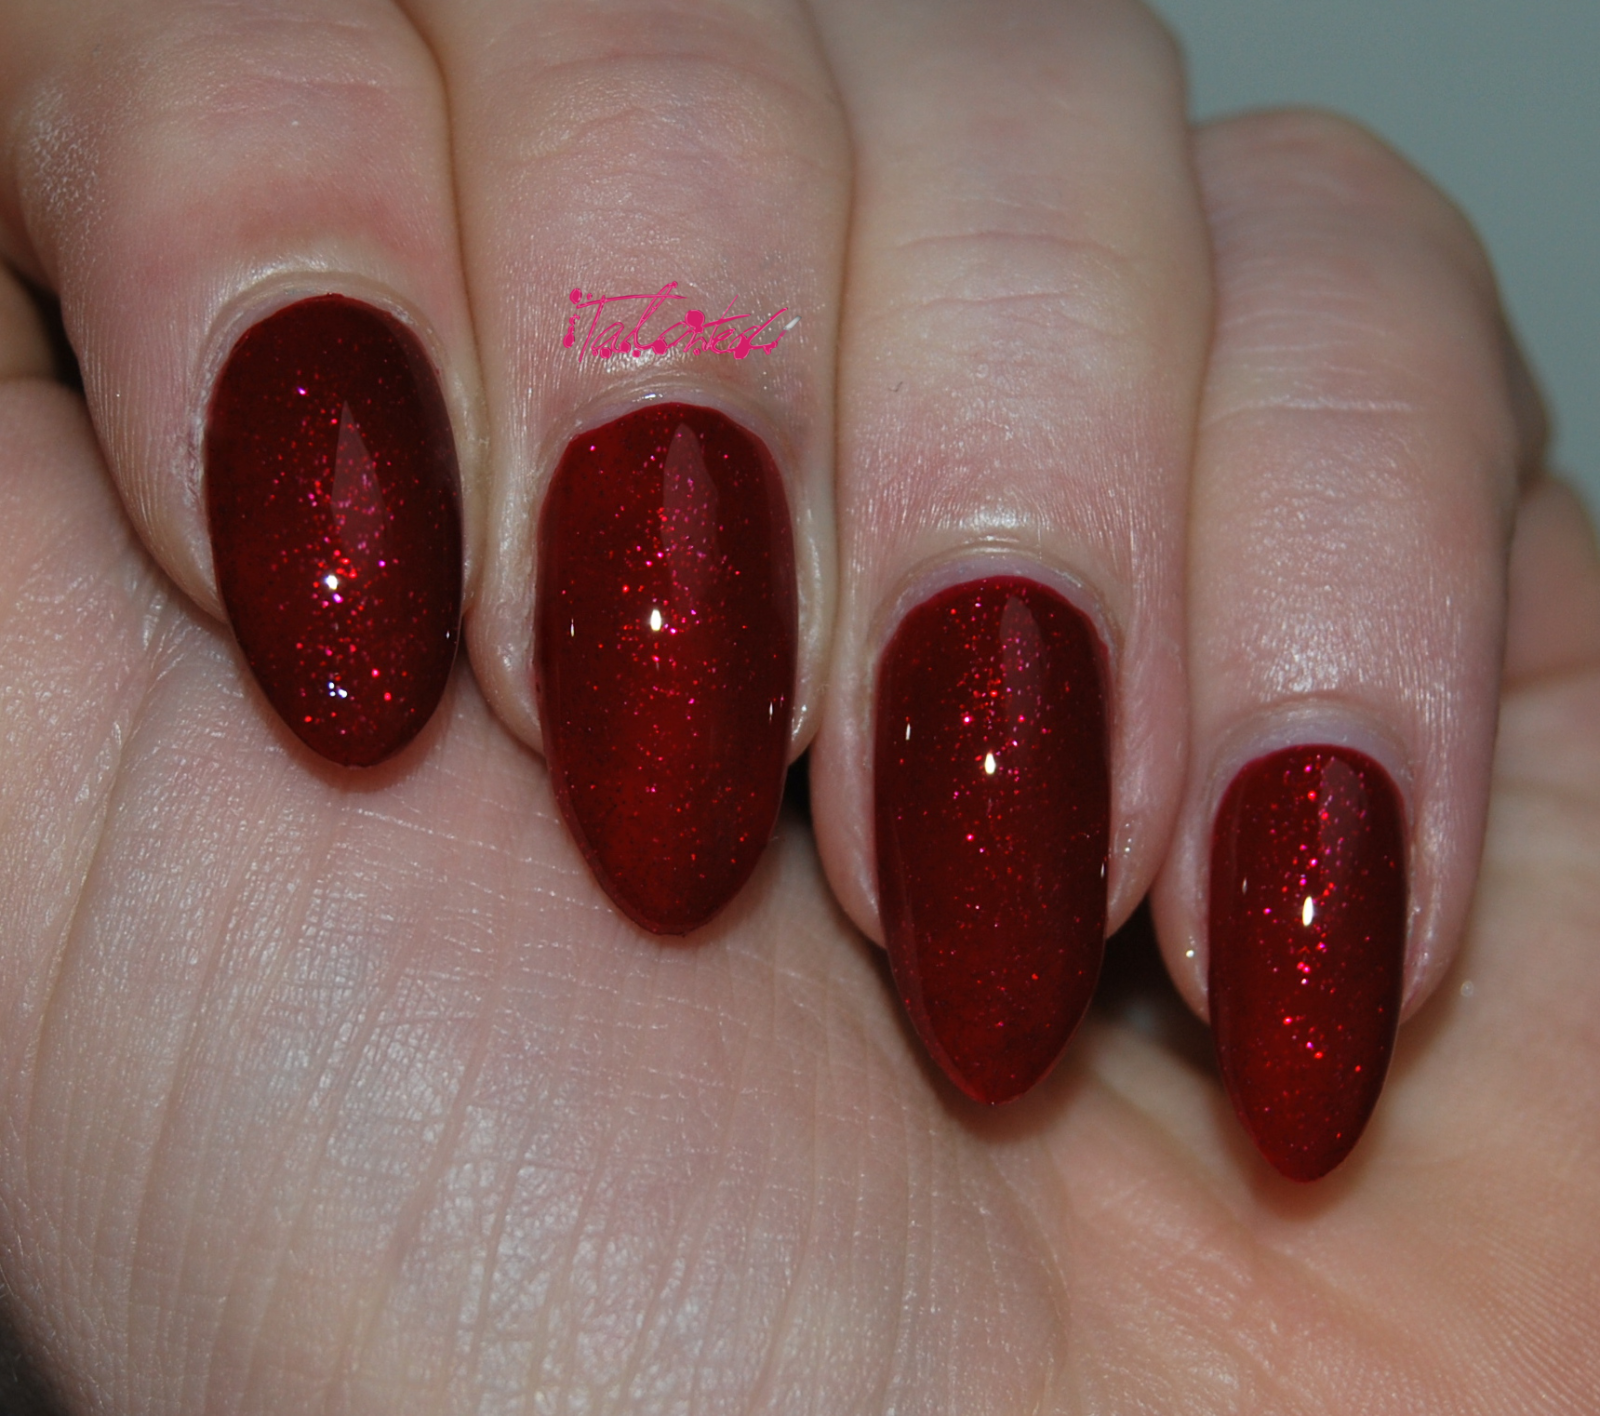 OPI Under The Mistletoe nail varnish